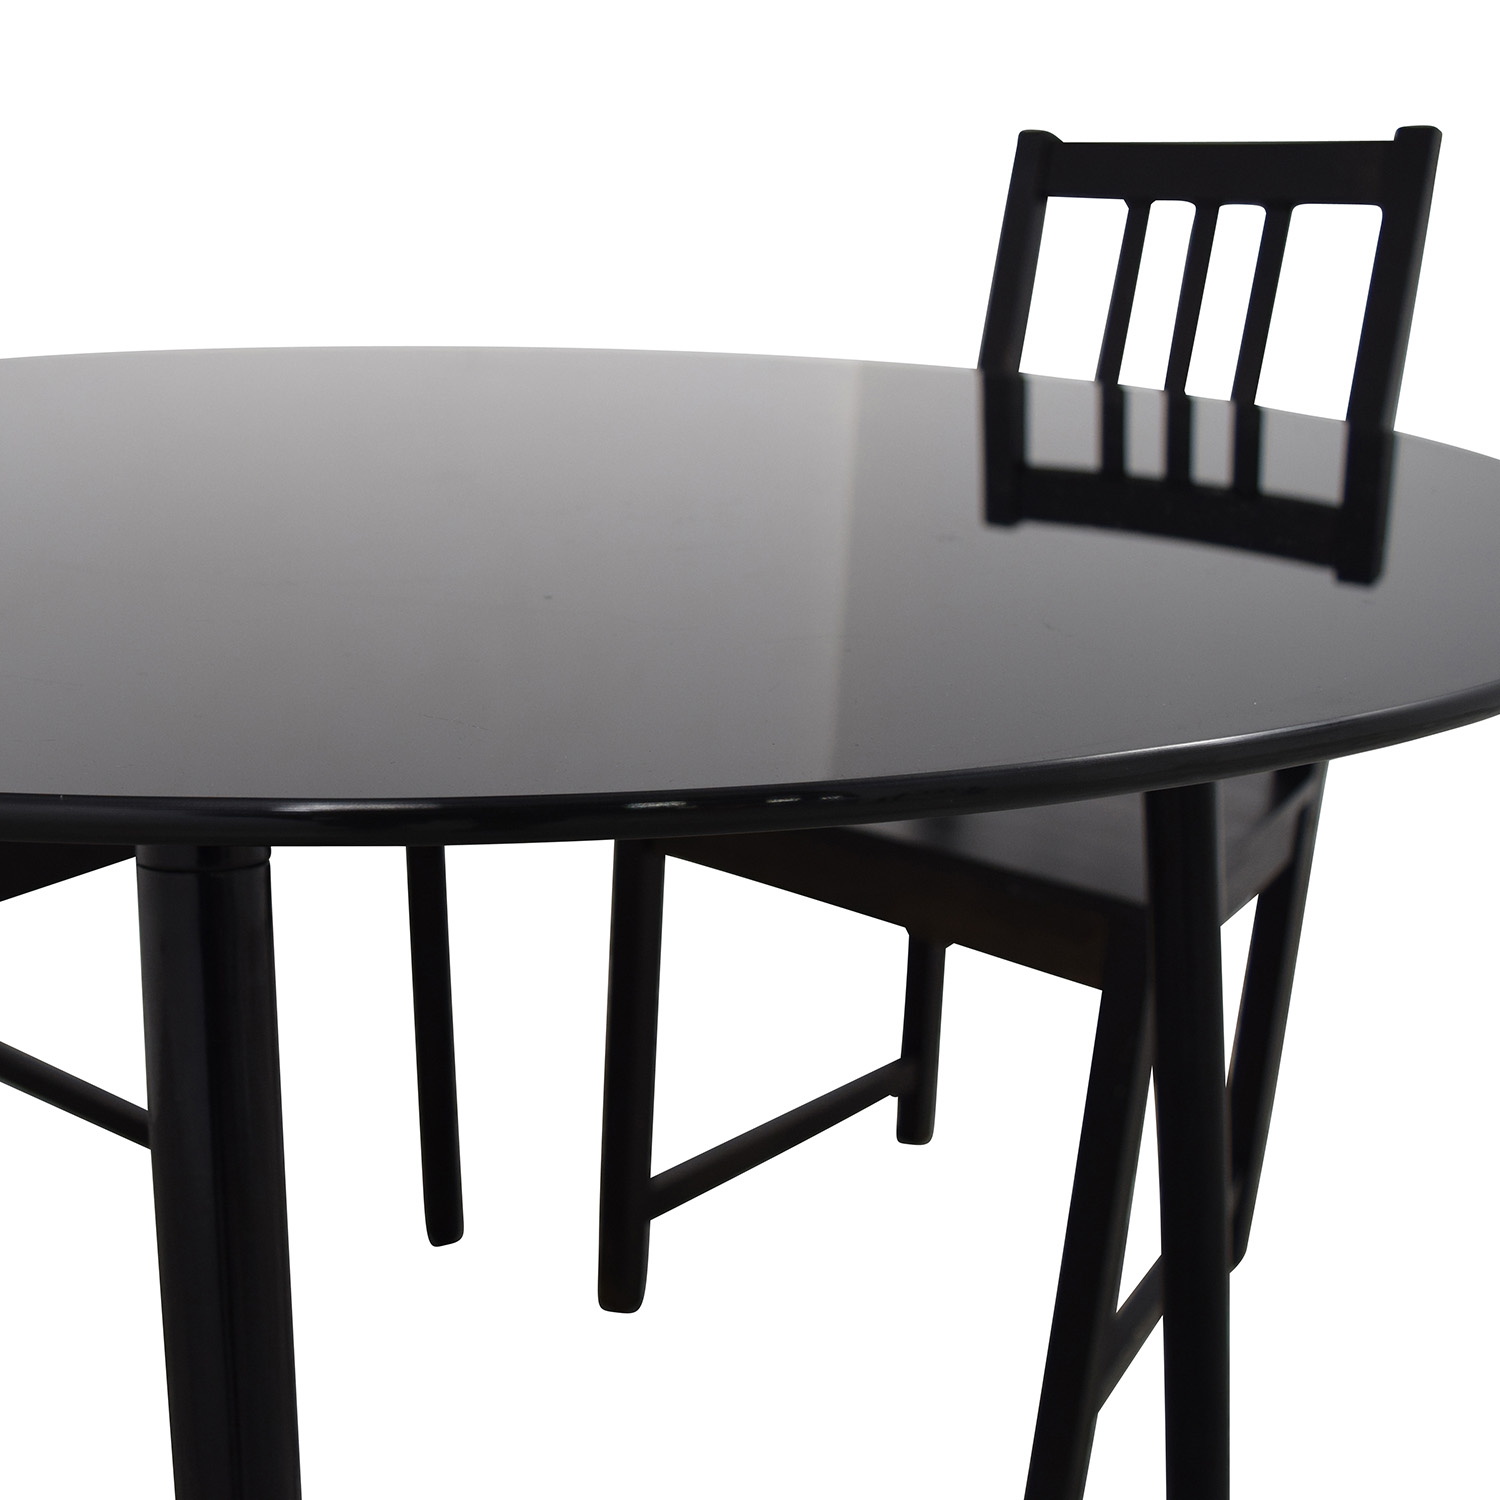 31 off ikea ikea glass and wood table and chairs tables for Ikea glass table tops